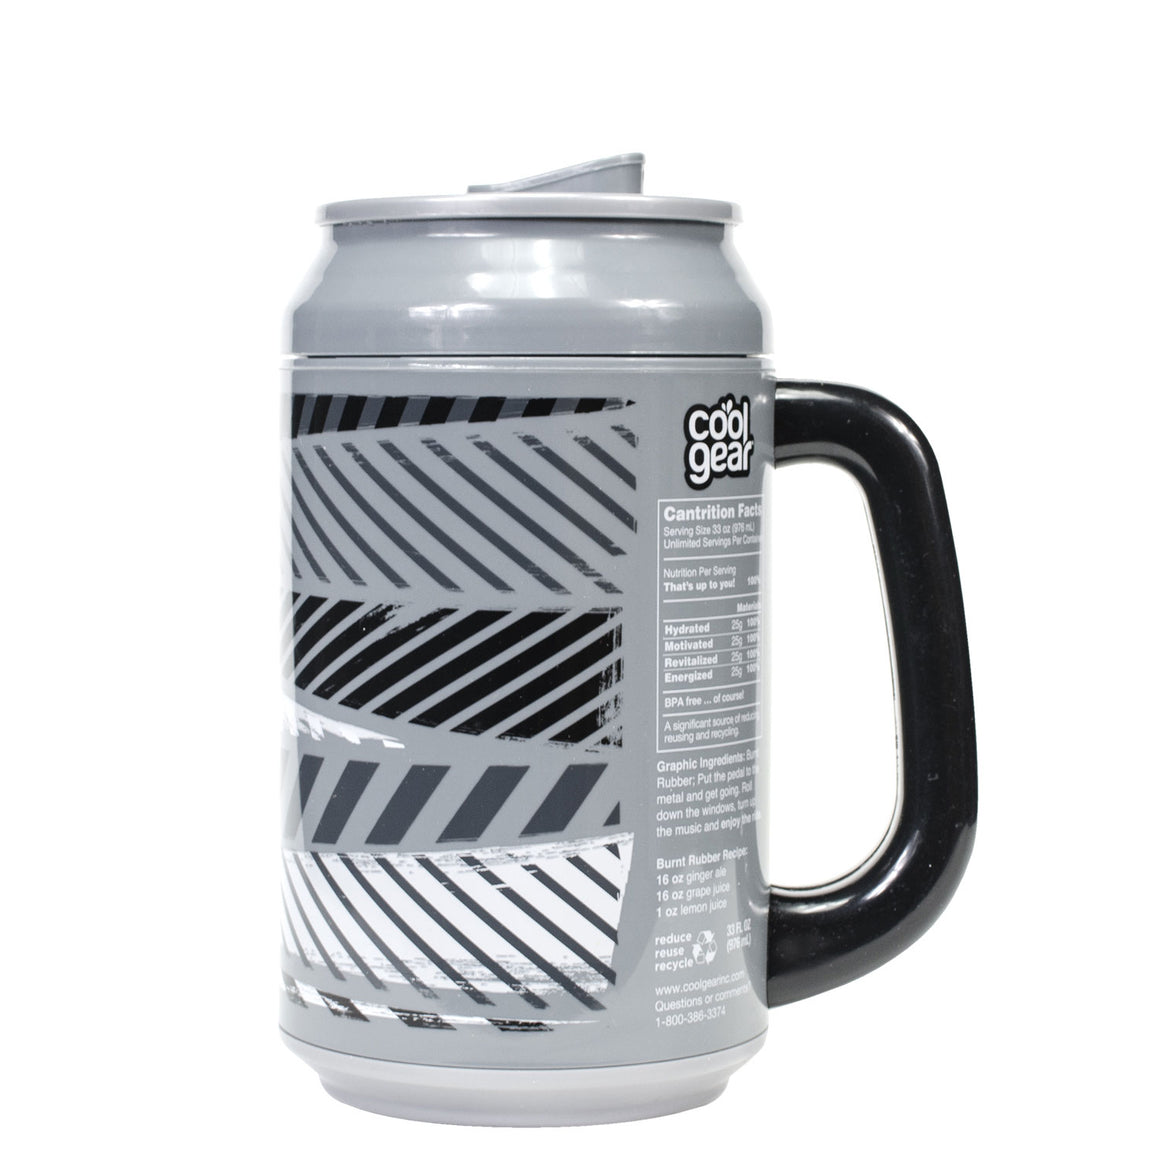 Gray / Burnt Rubber 33 Oz coolgearcan with Handle at Cool Gear Coolgearcans